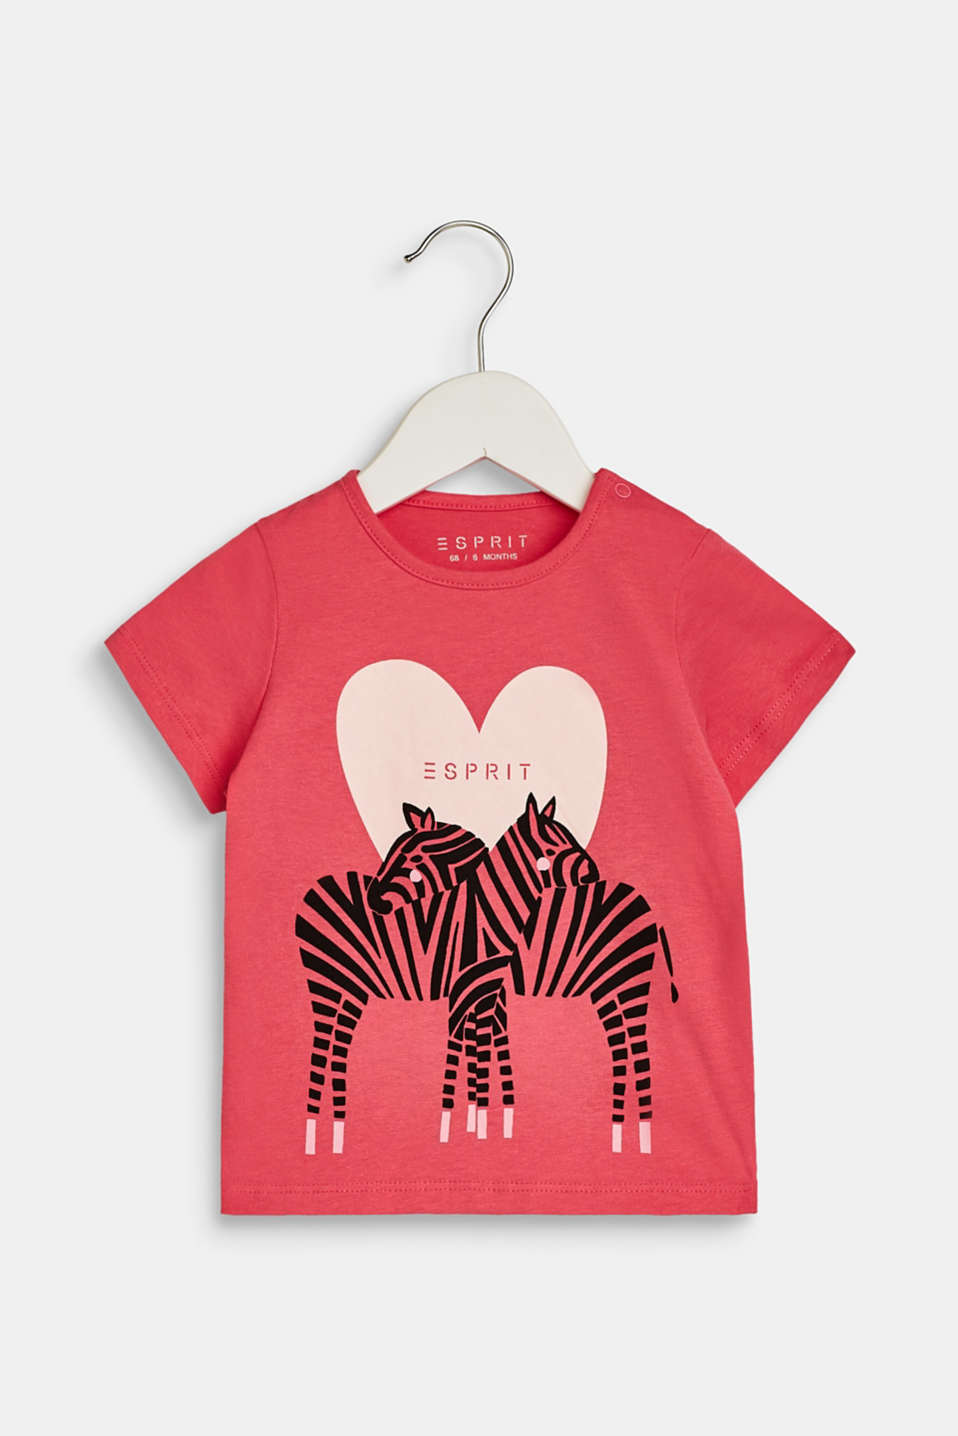 Esprit - T-shirt with a zebra print, 100% cotton